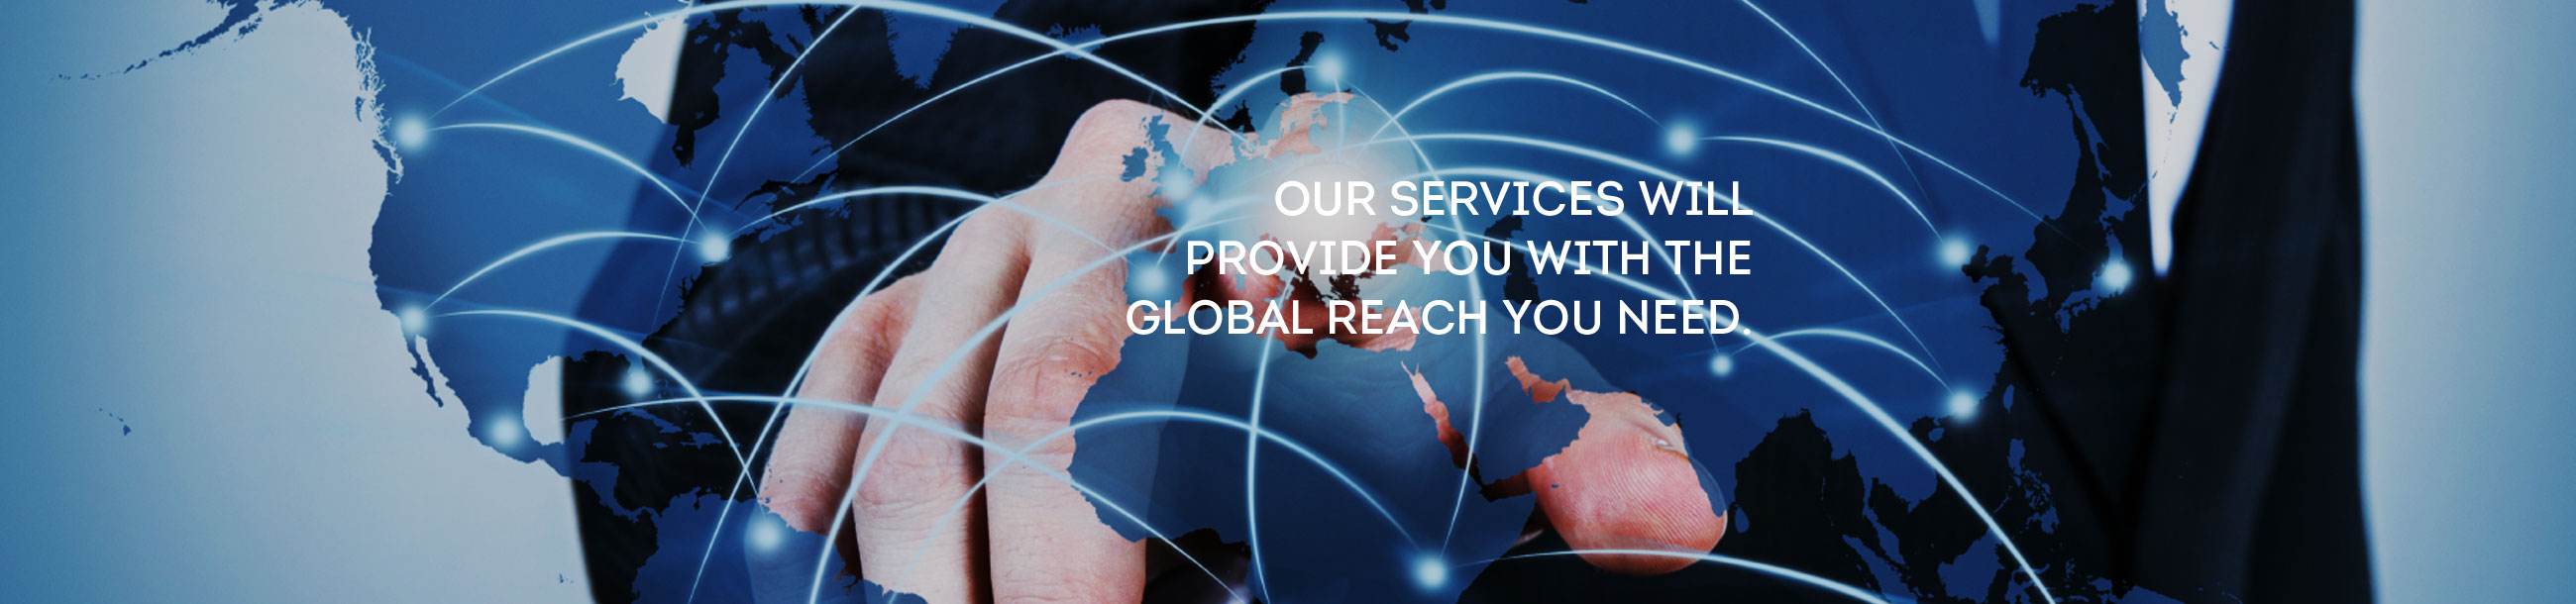 Our Services Will Provide Your With Global Reach You Need